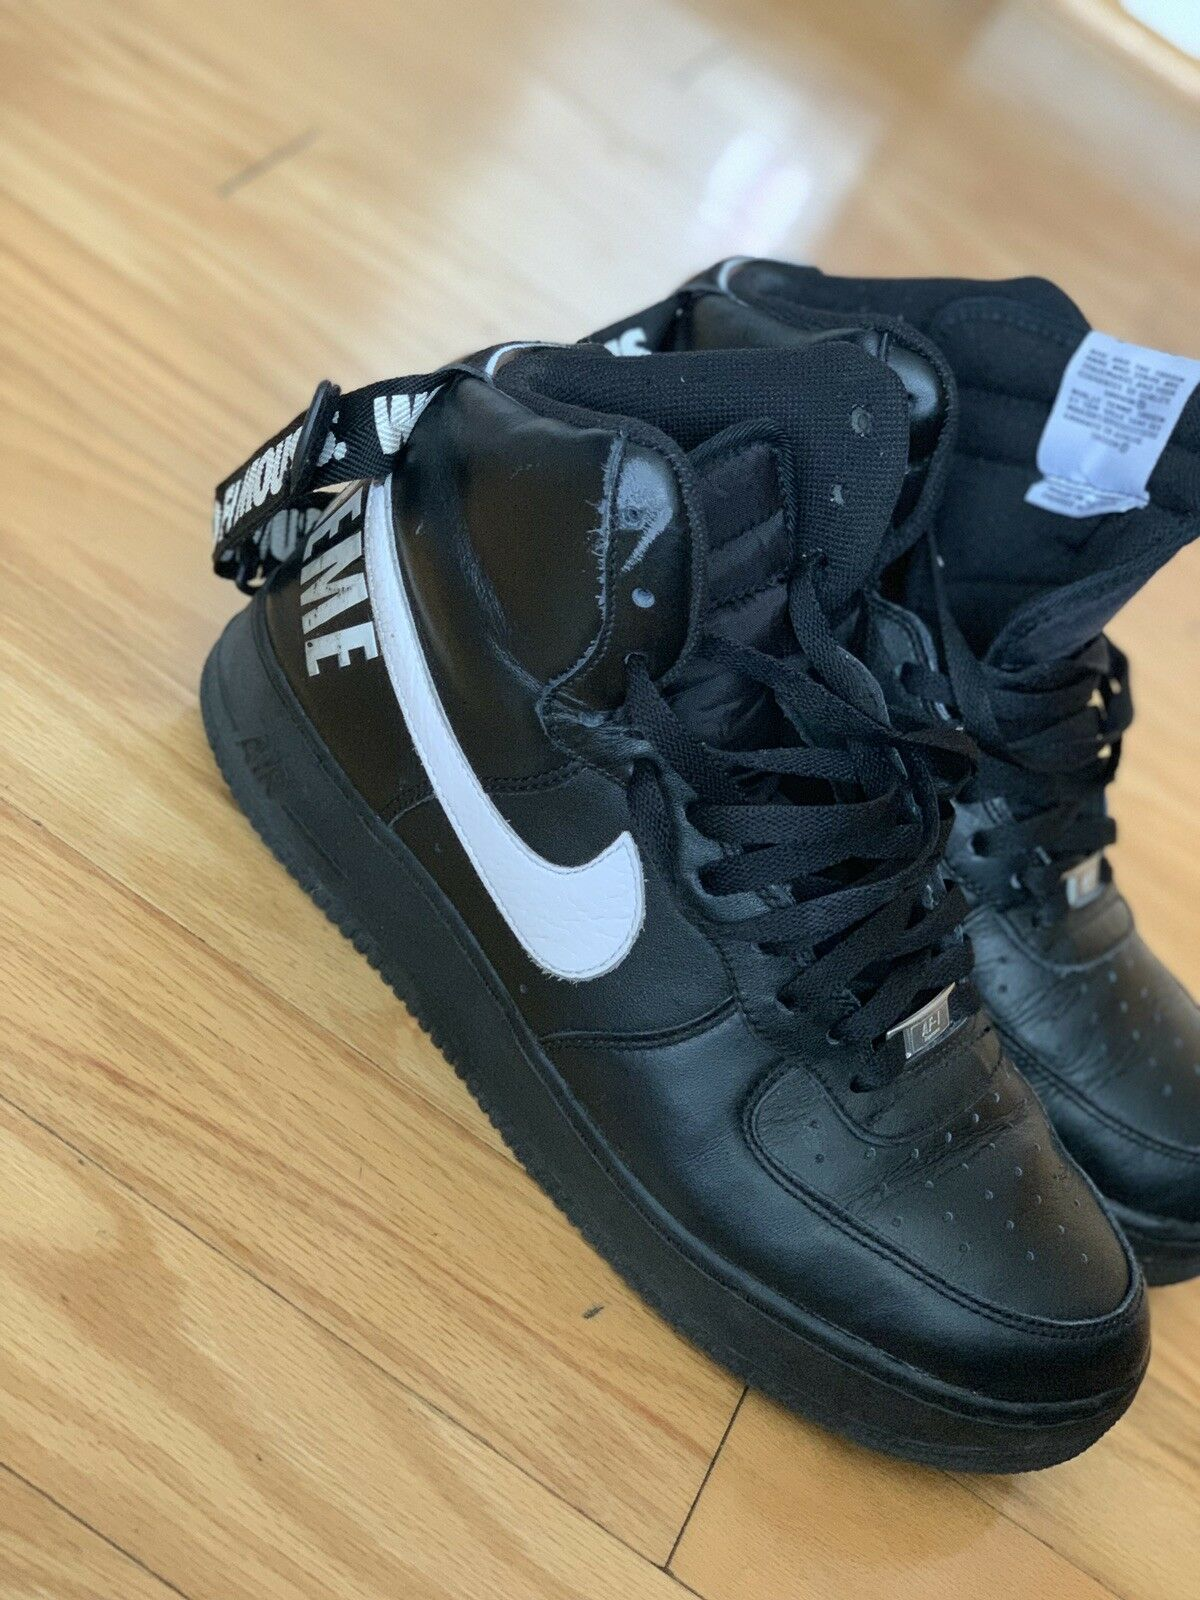 e12ef5ad39f39 Air Force One High Supreme SP Size 12 With Box Nike Pre-owned ...